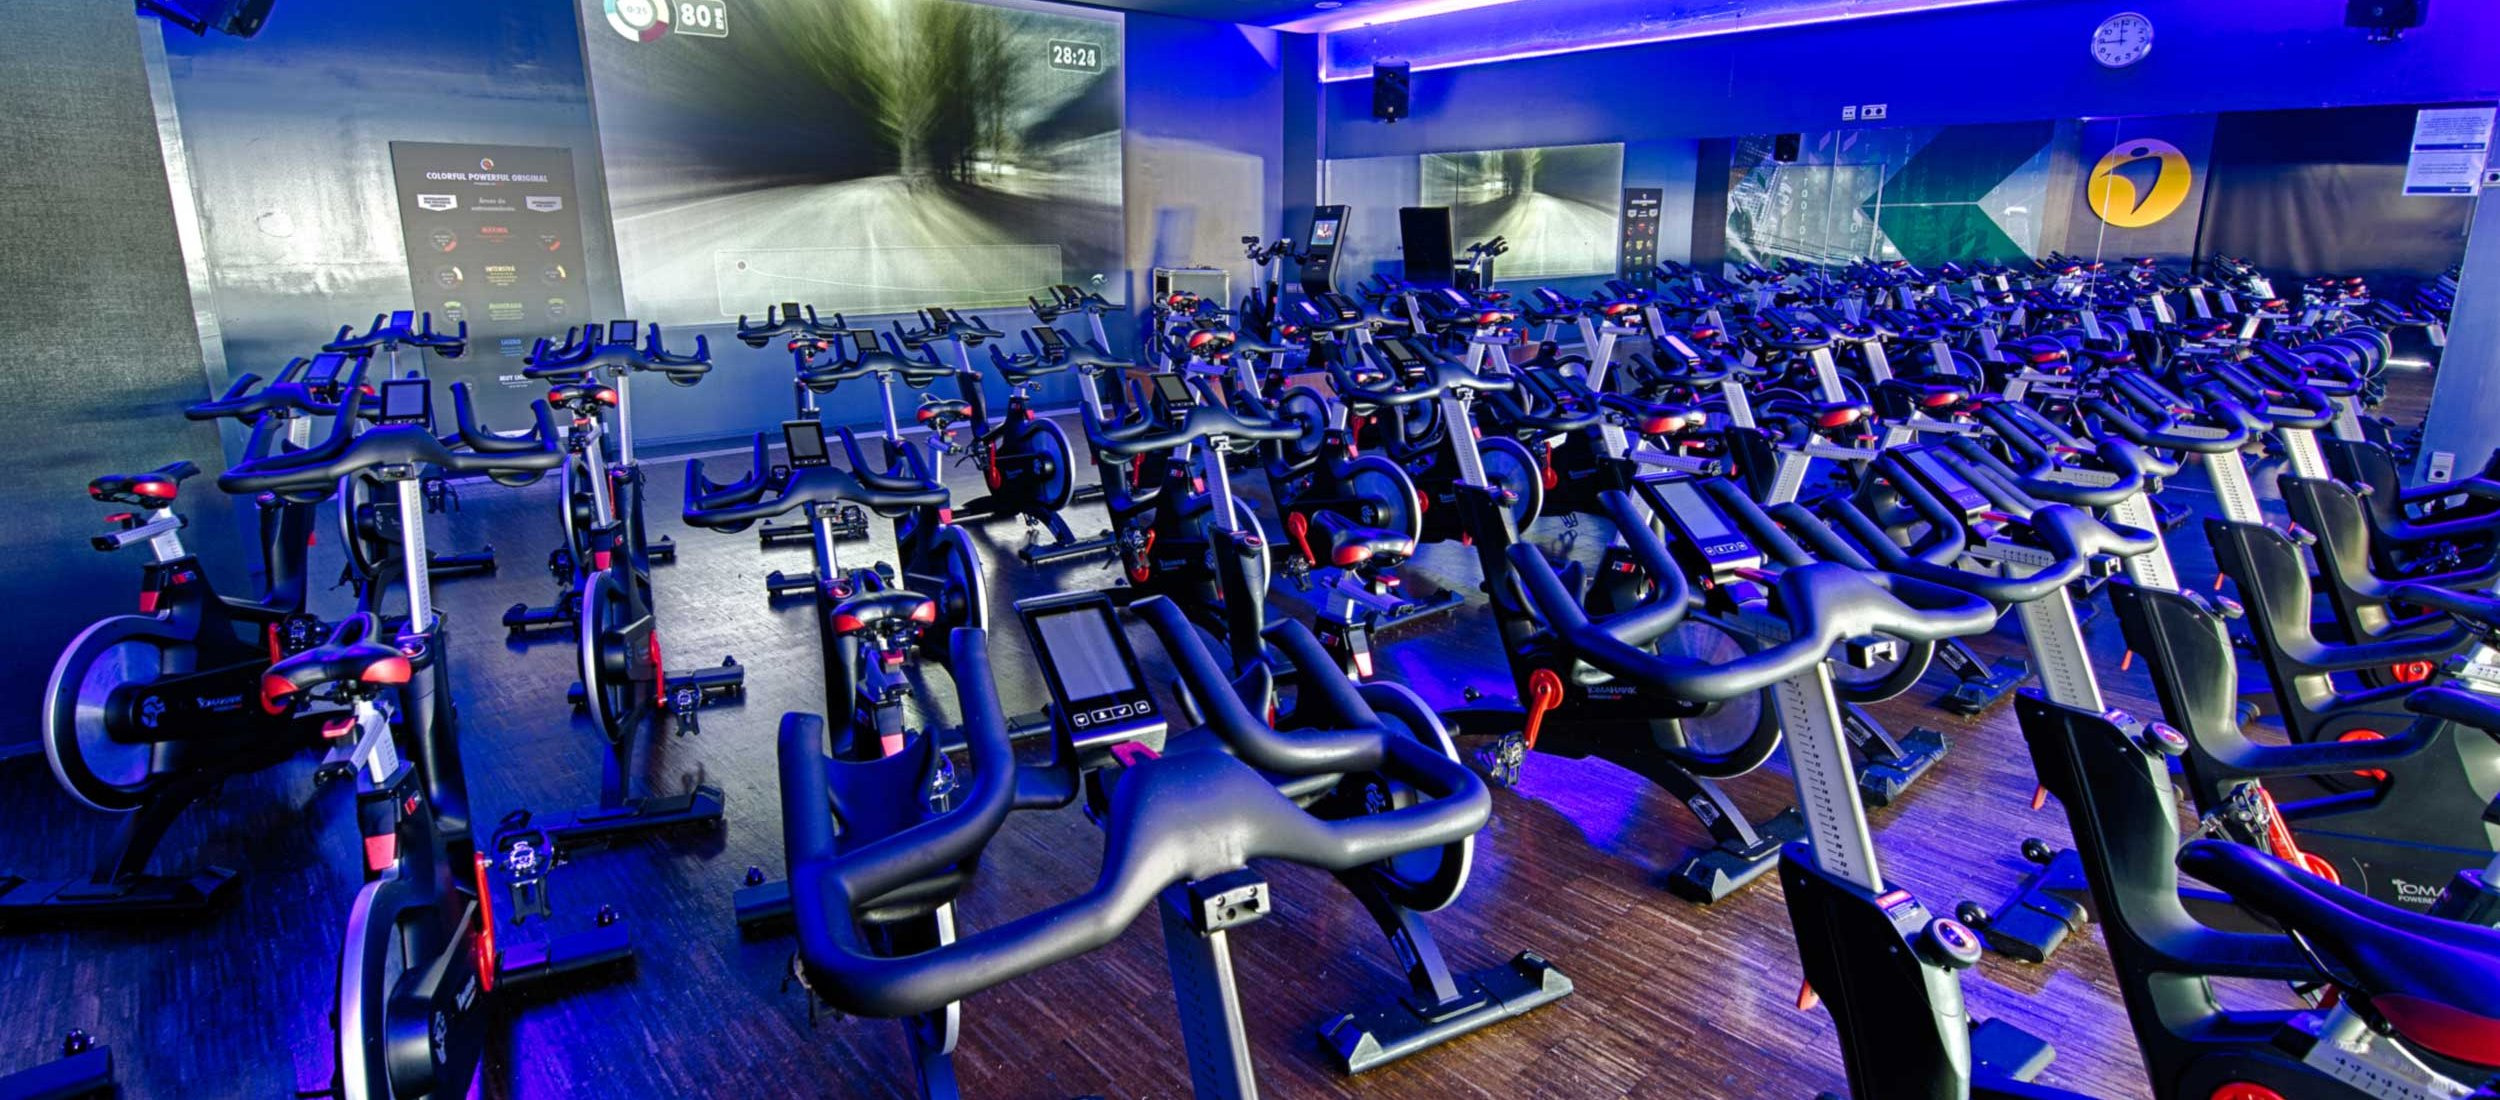 spinning-gavà-gimnasio-castelldefels-salud-healthy-life-sport-wellness-deporte-pádel-piscina-pool-fitness